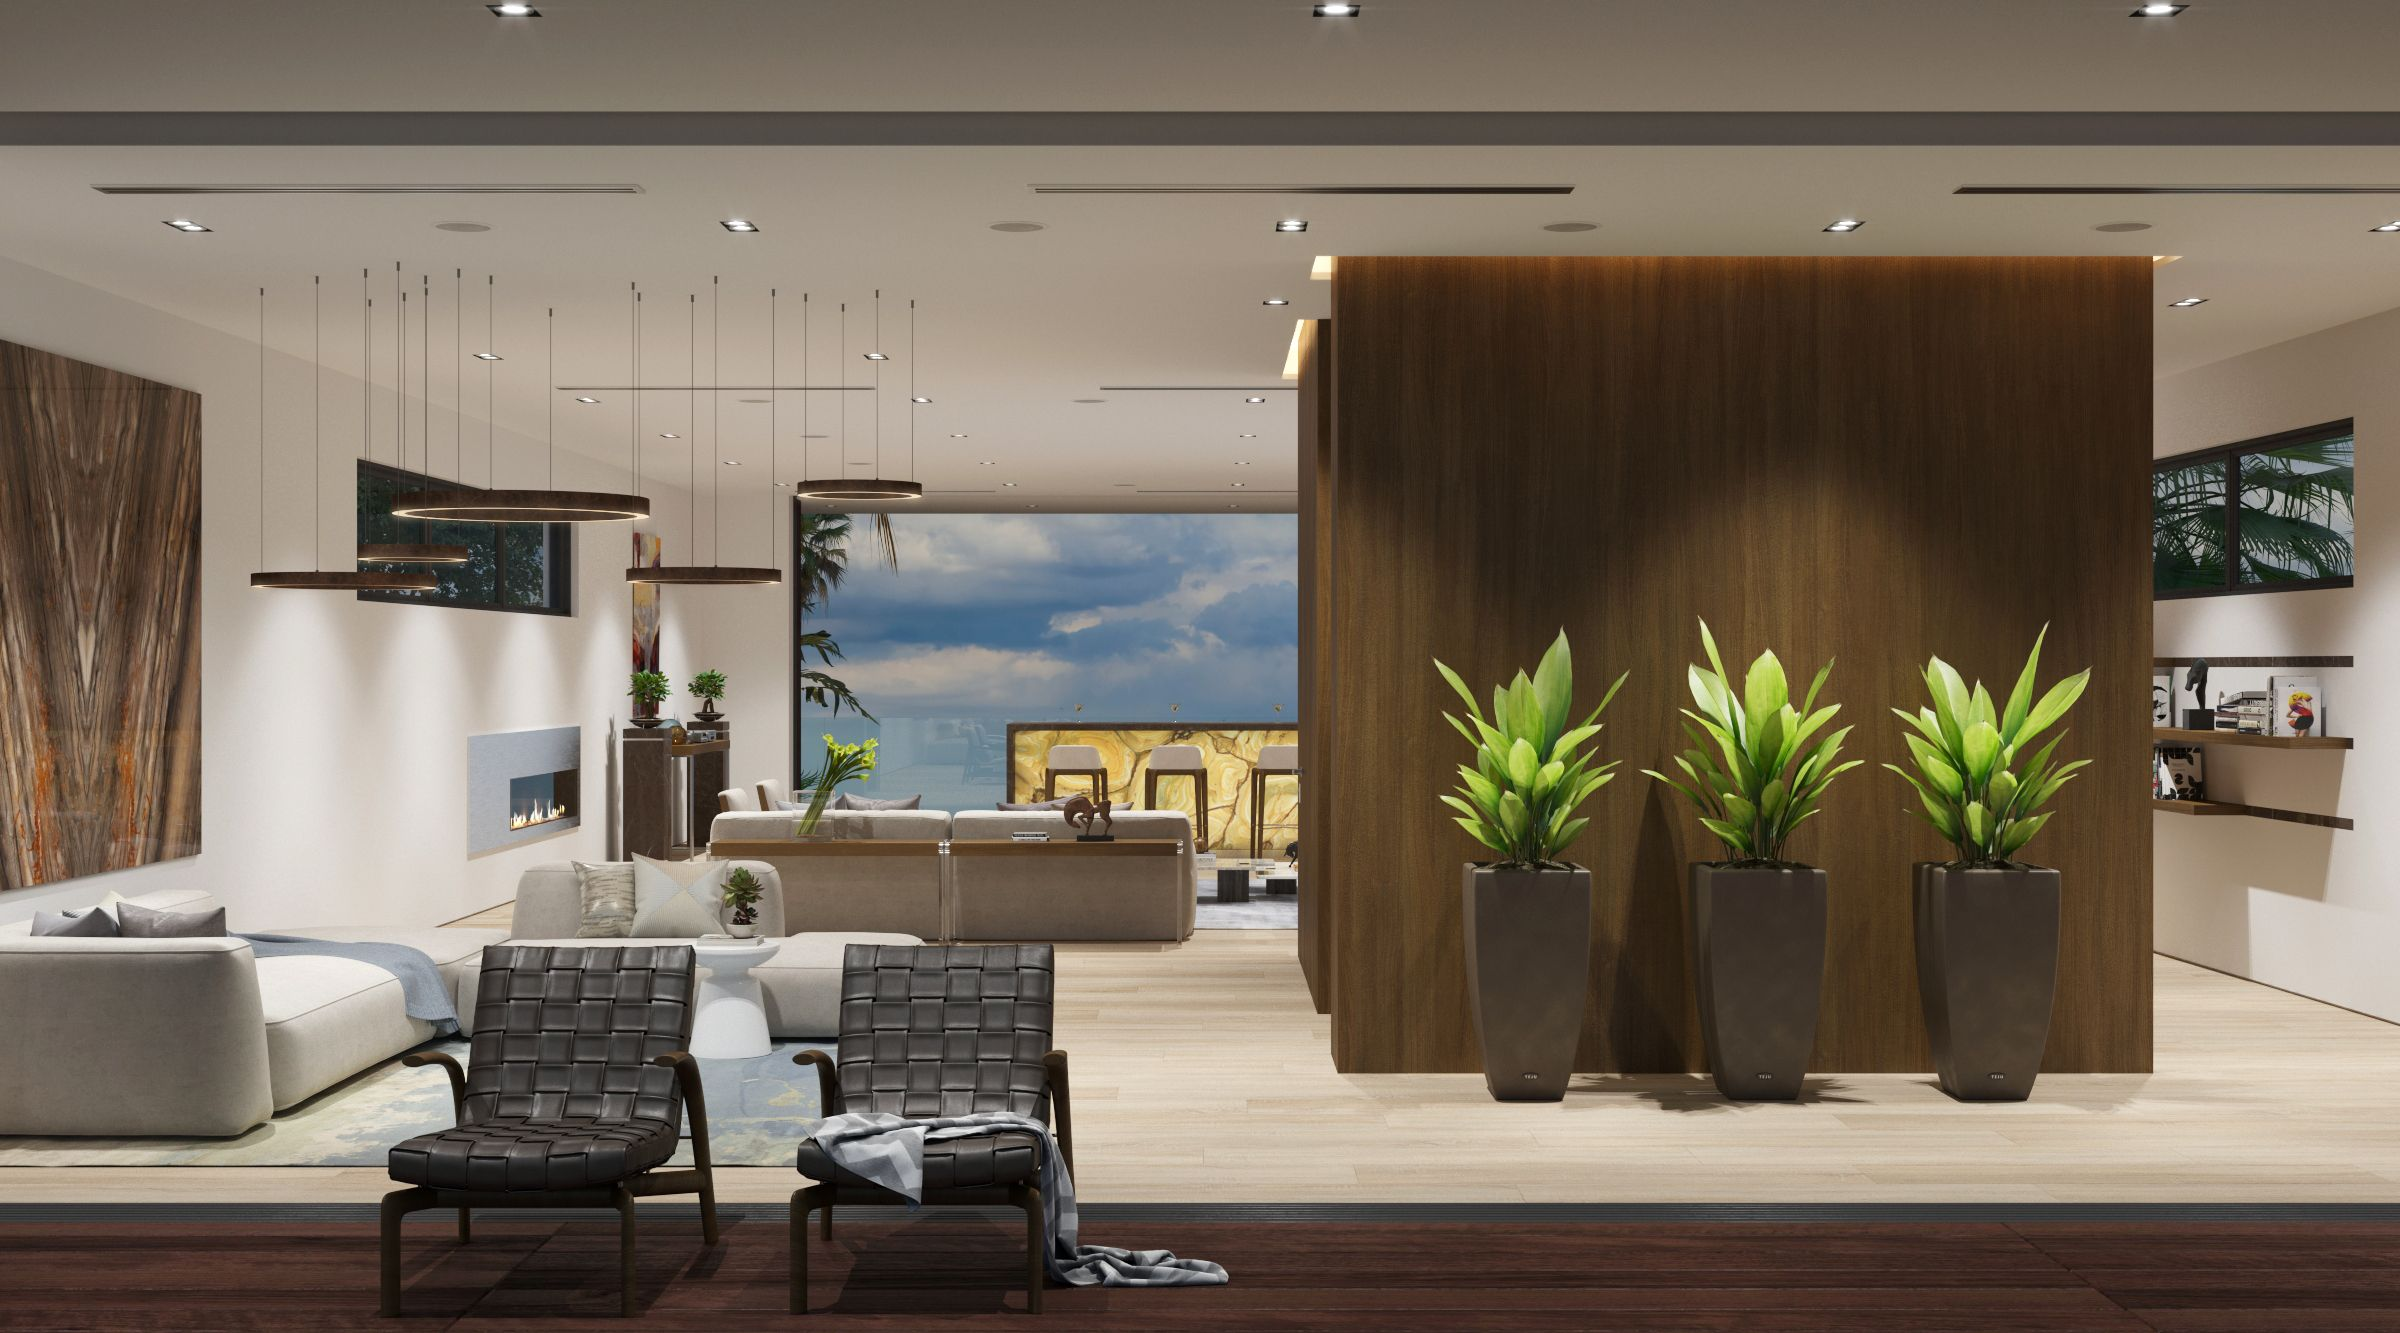 Interior design & 3d-visualization - Vividi group | Software: Autodesk 3ds  Max,